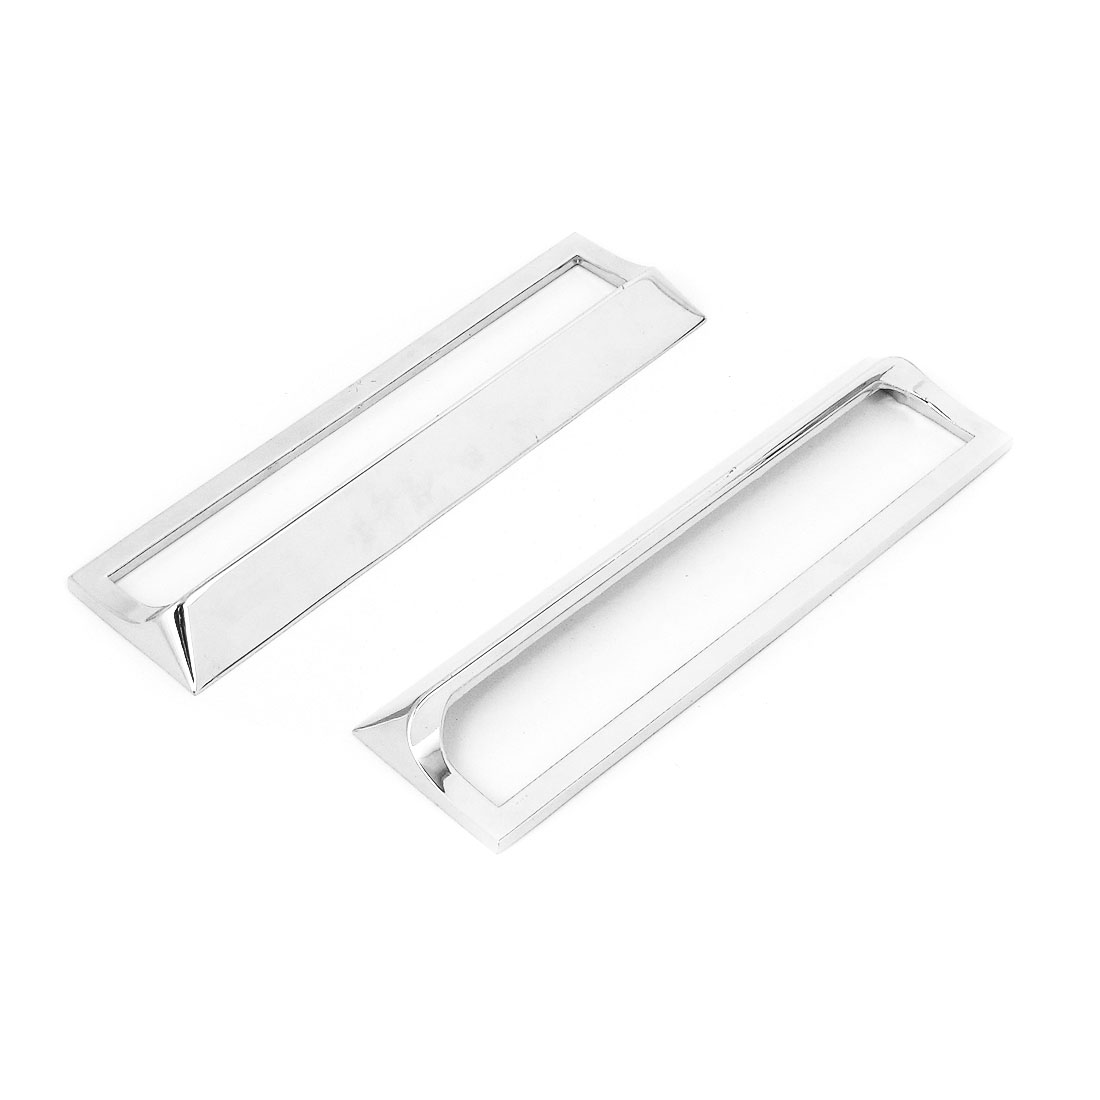 Stainless Steel Door Pull Handles Silver Tone 16.5cm Length 2 Pcs